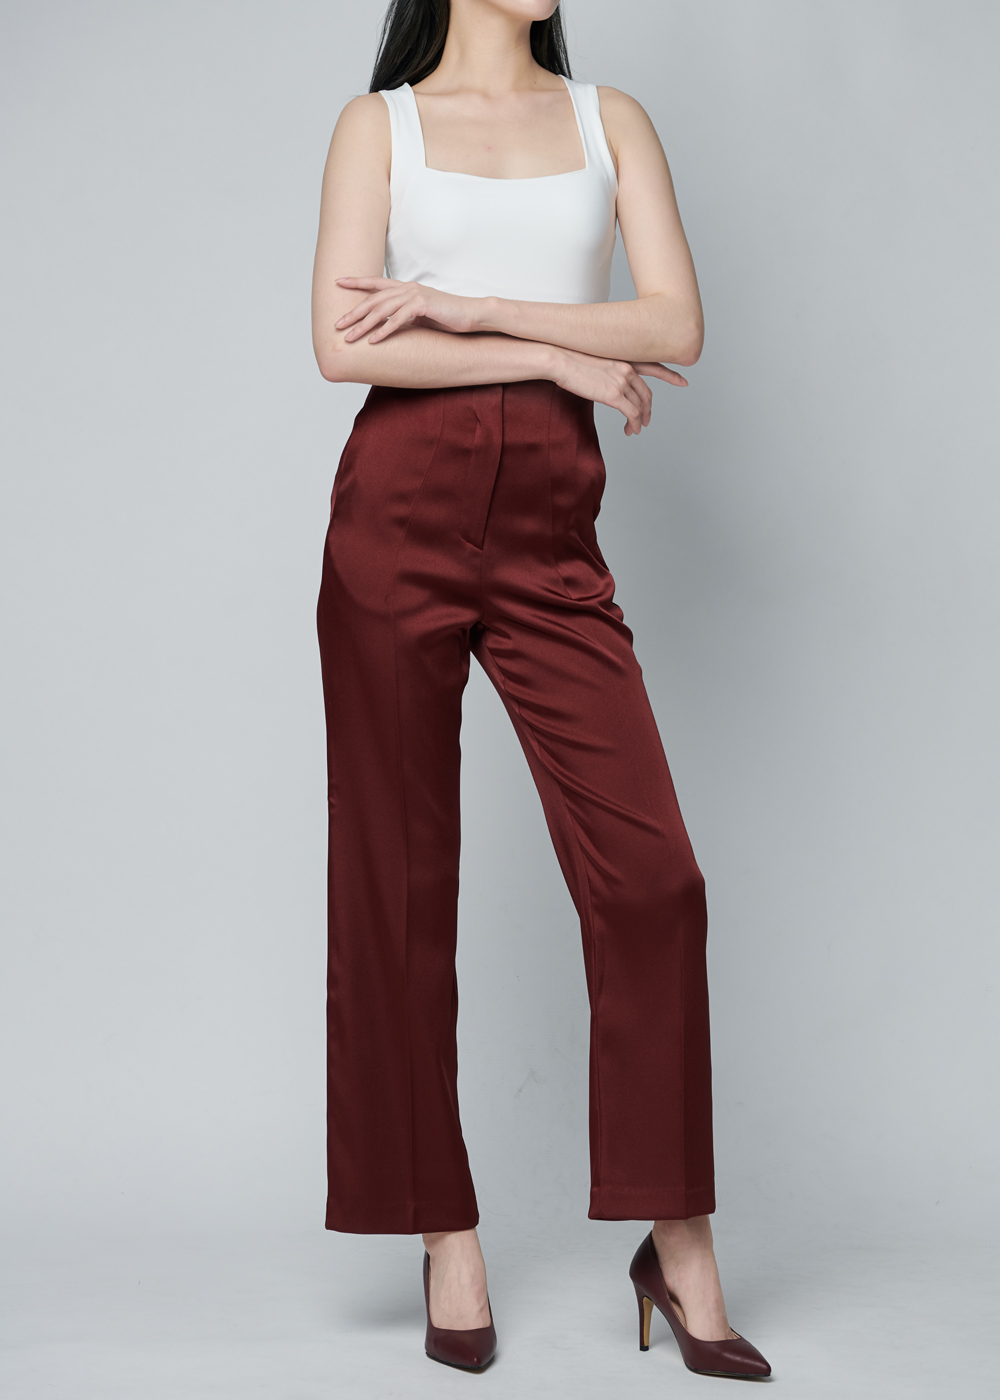 vivian satin slacks